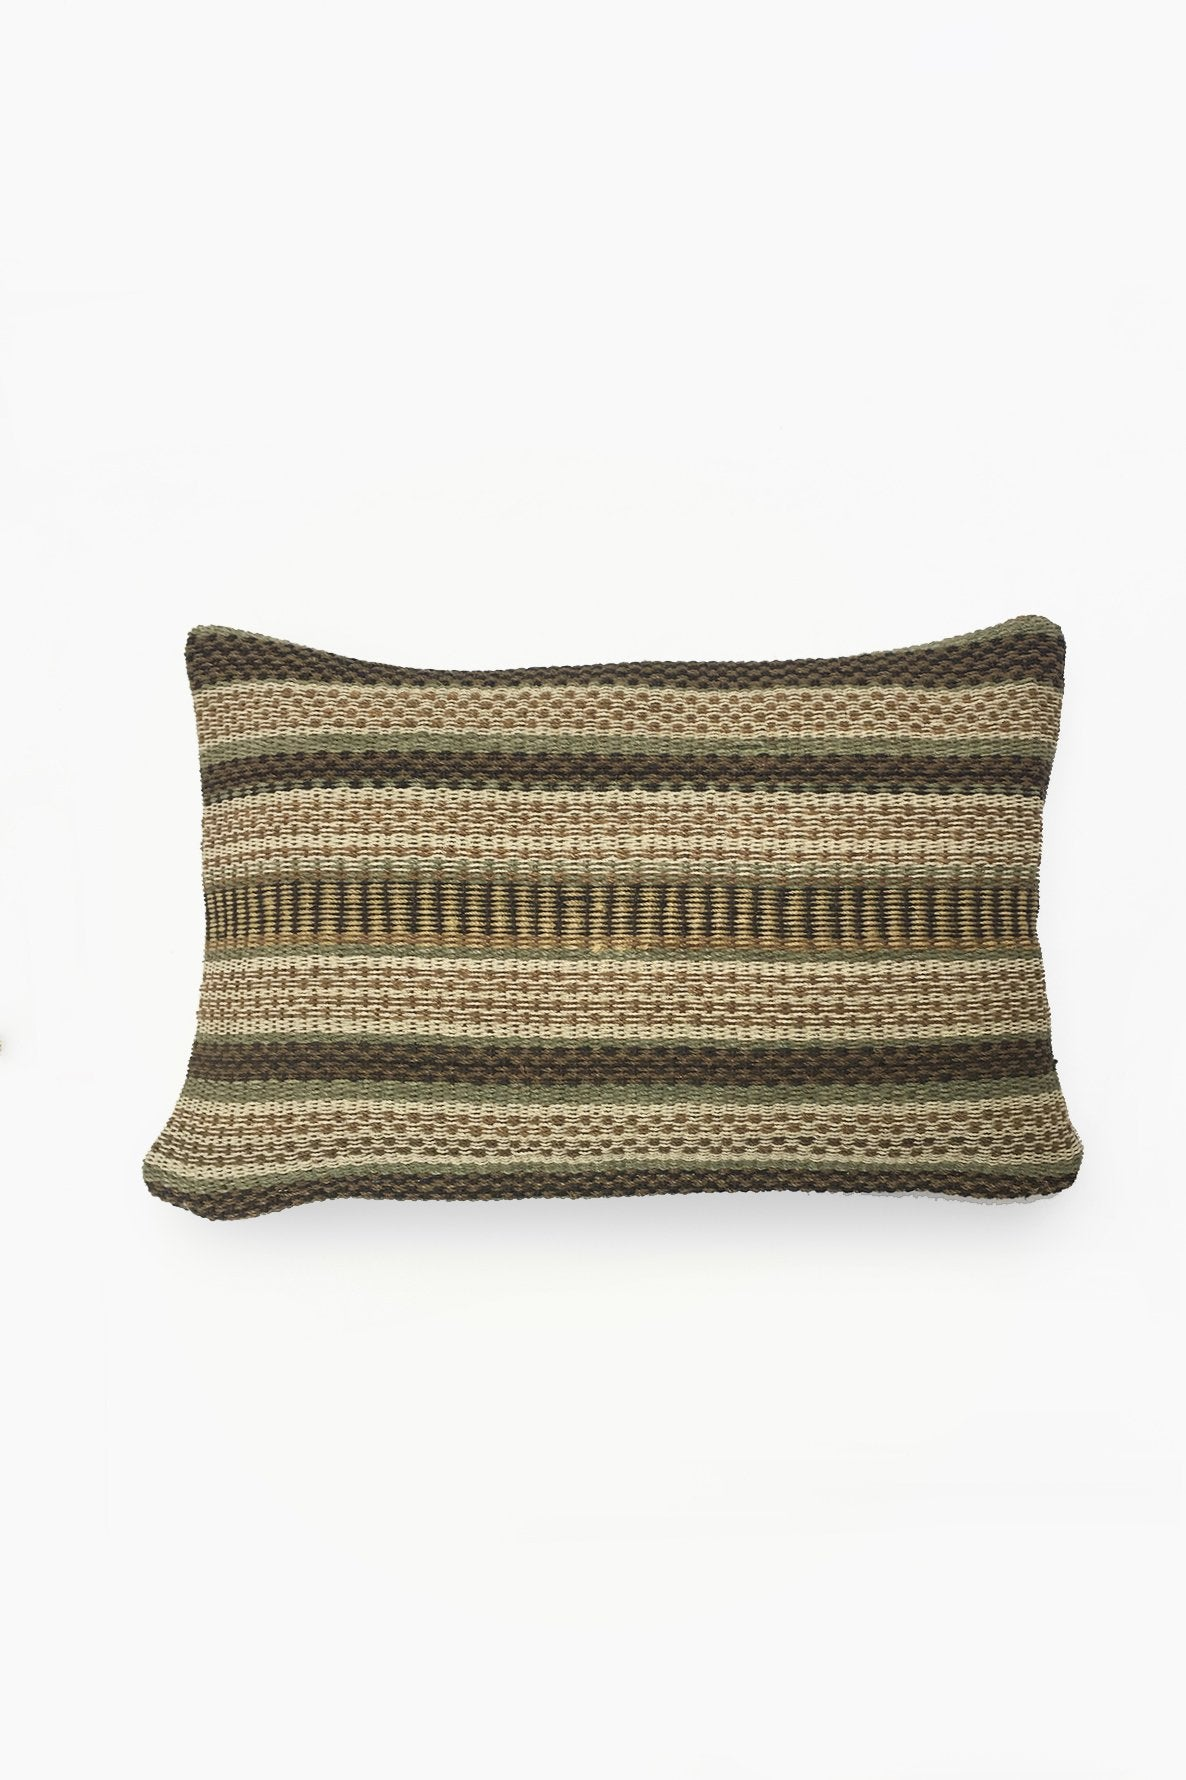 Cream Chaguar Loom Cushion with Multicolored Design Details.